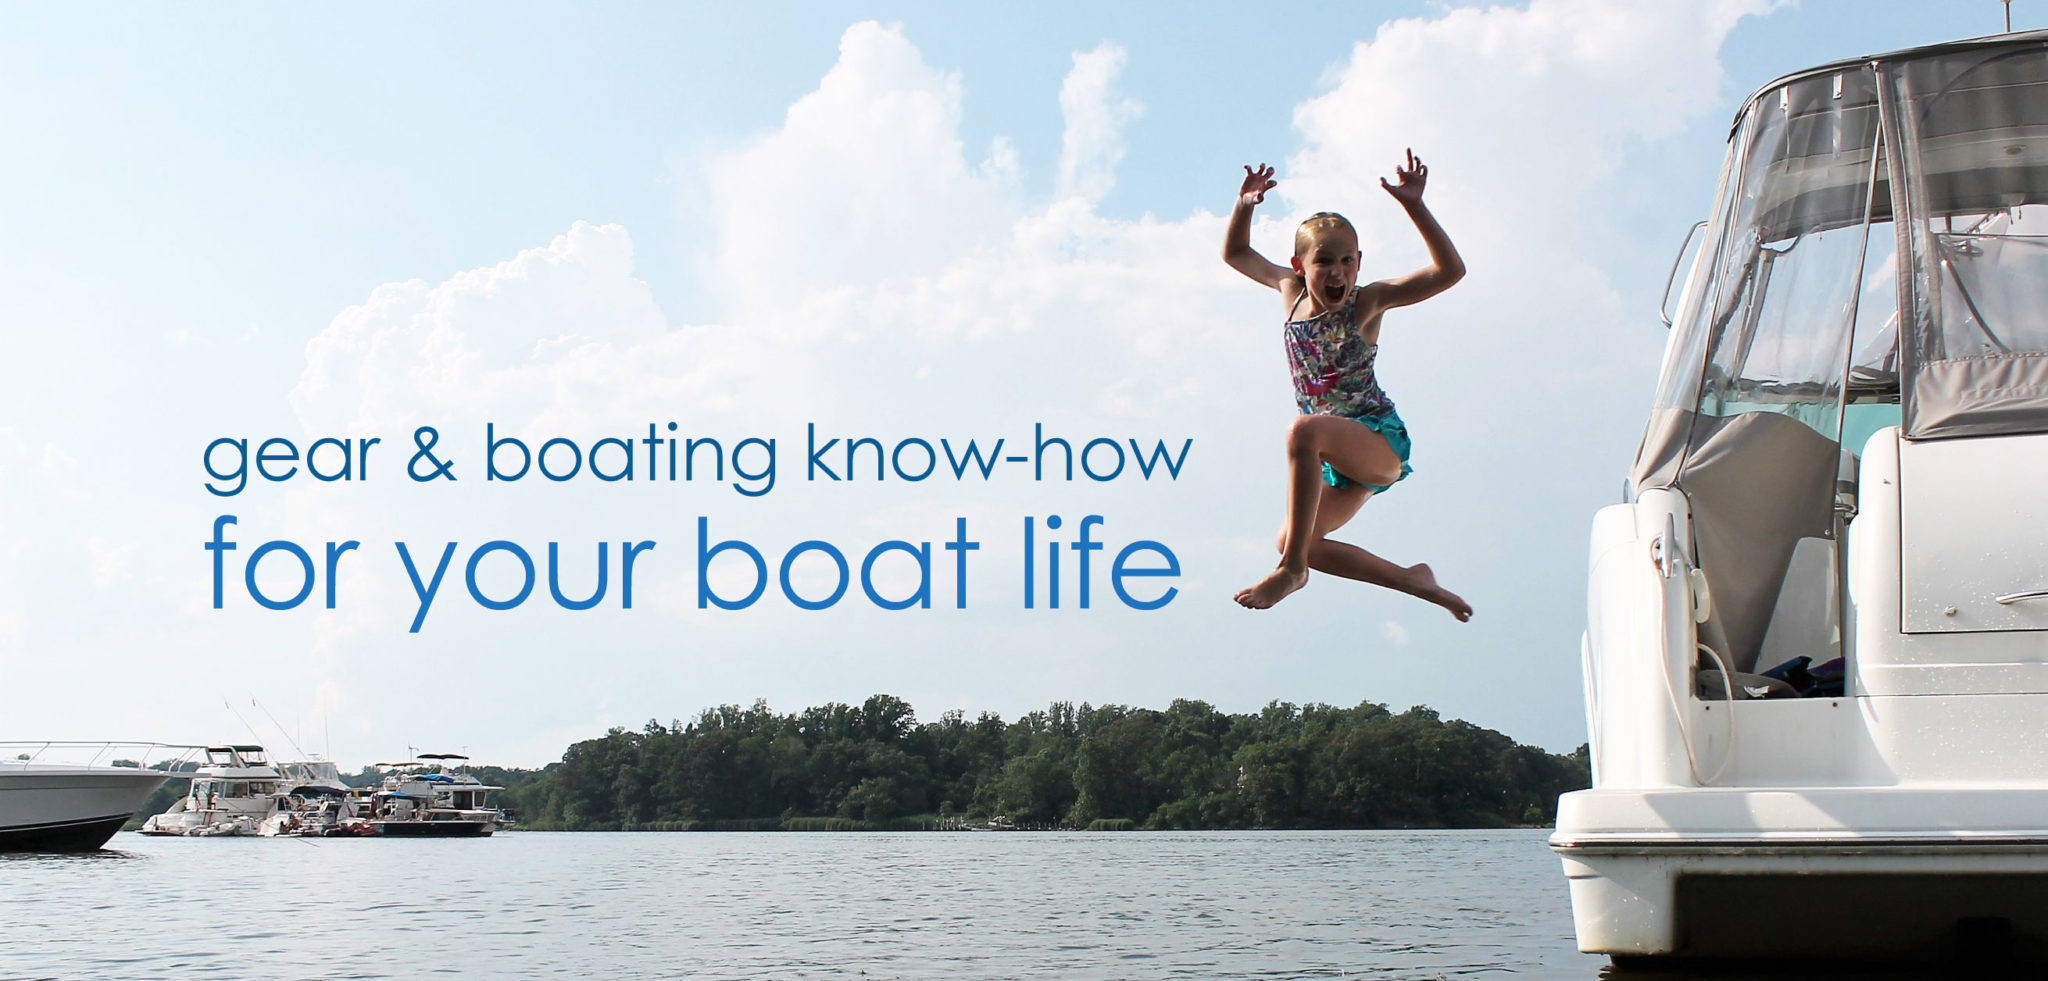 gear and boating know-how for your boat life